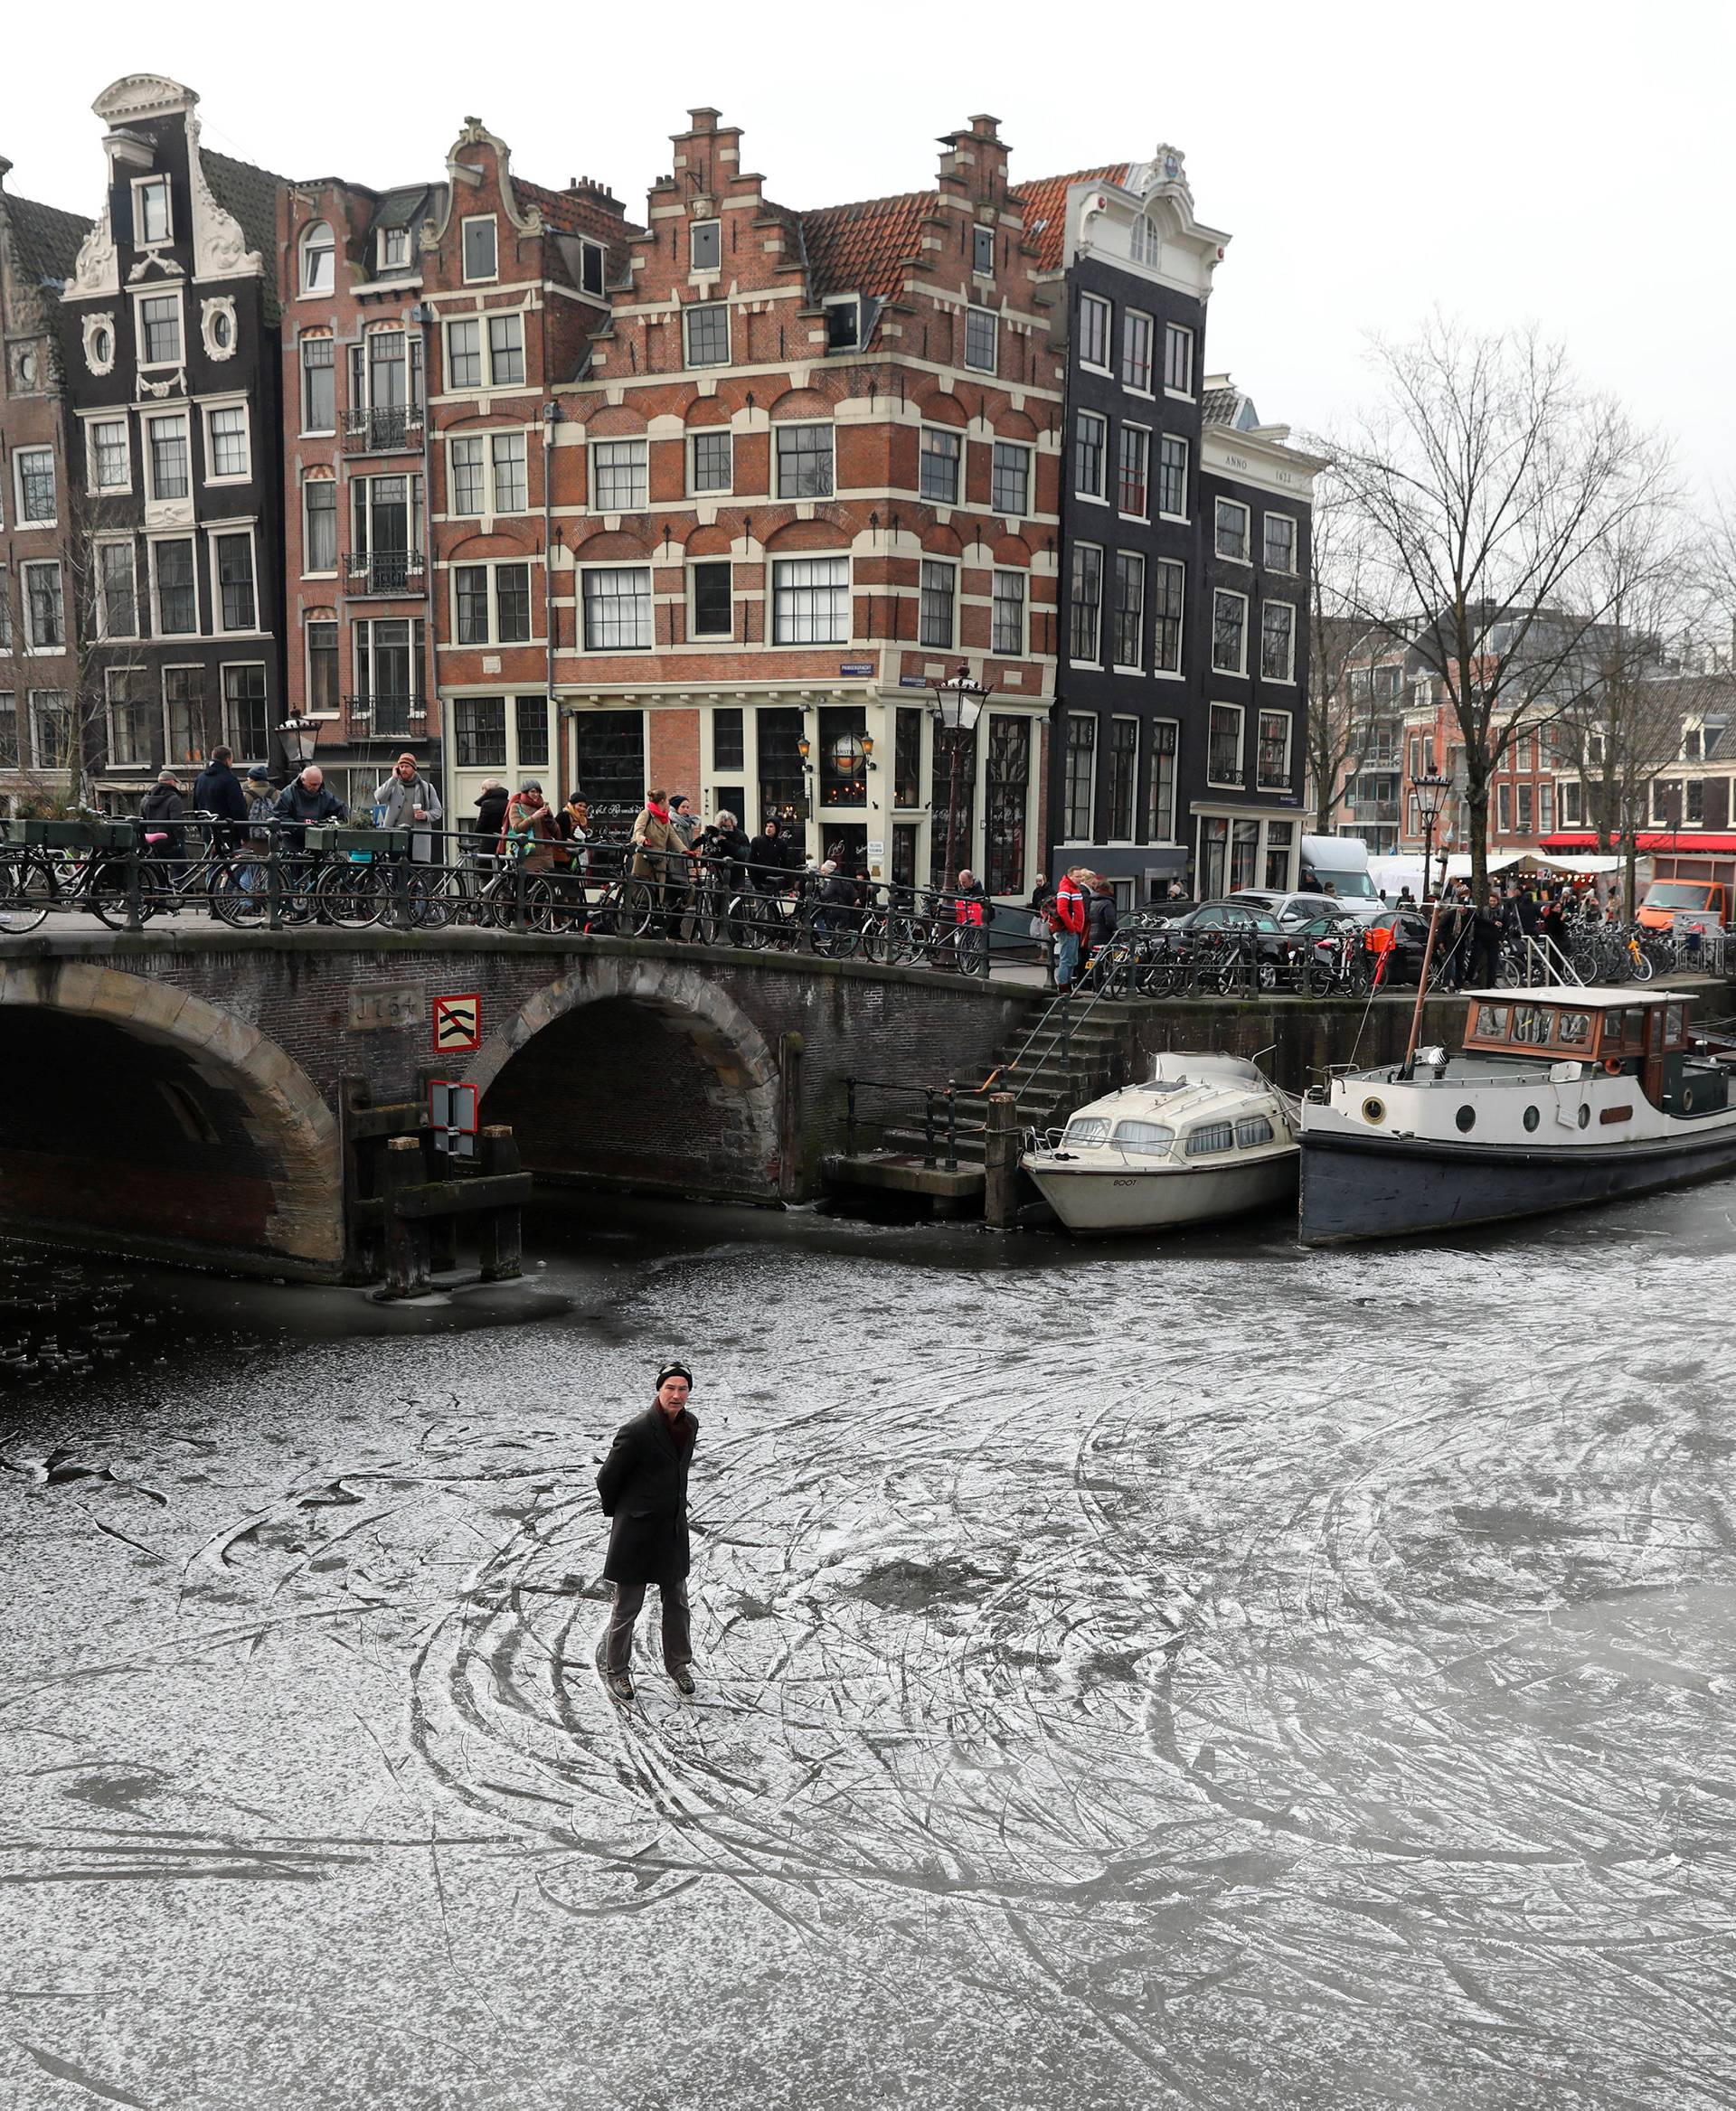 Ice skaters skate on the frozen Prinsengracht and Brouwersgracht canal during icy weather in Amsterdam